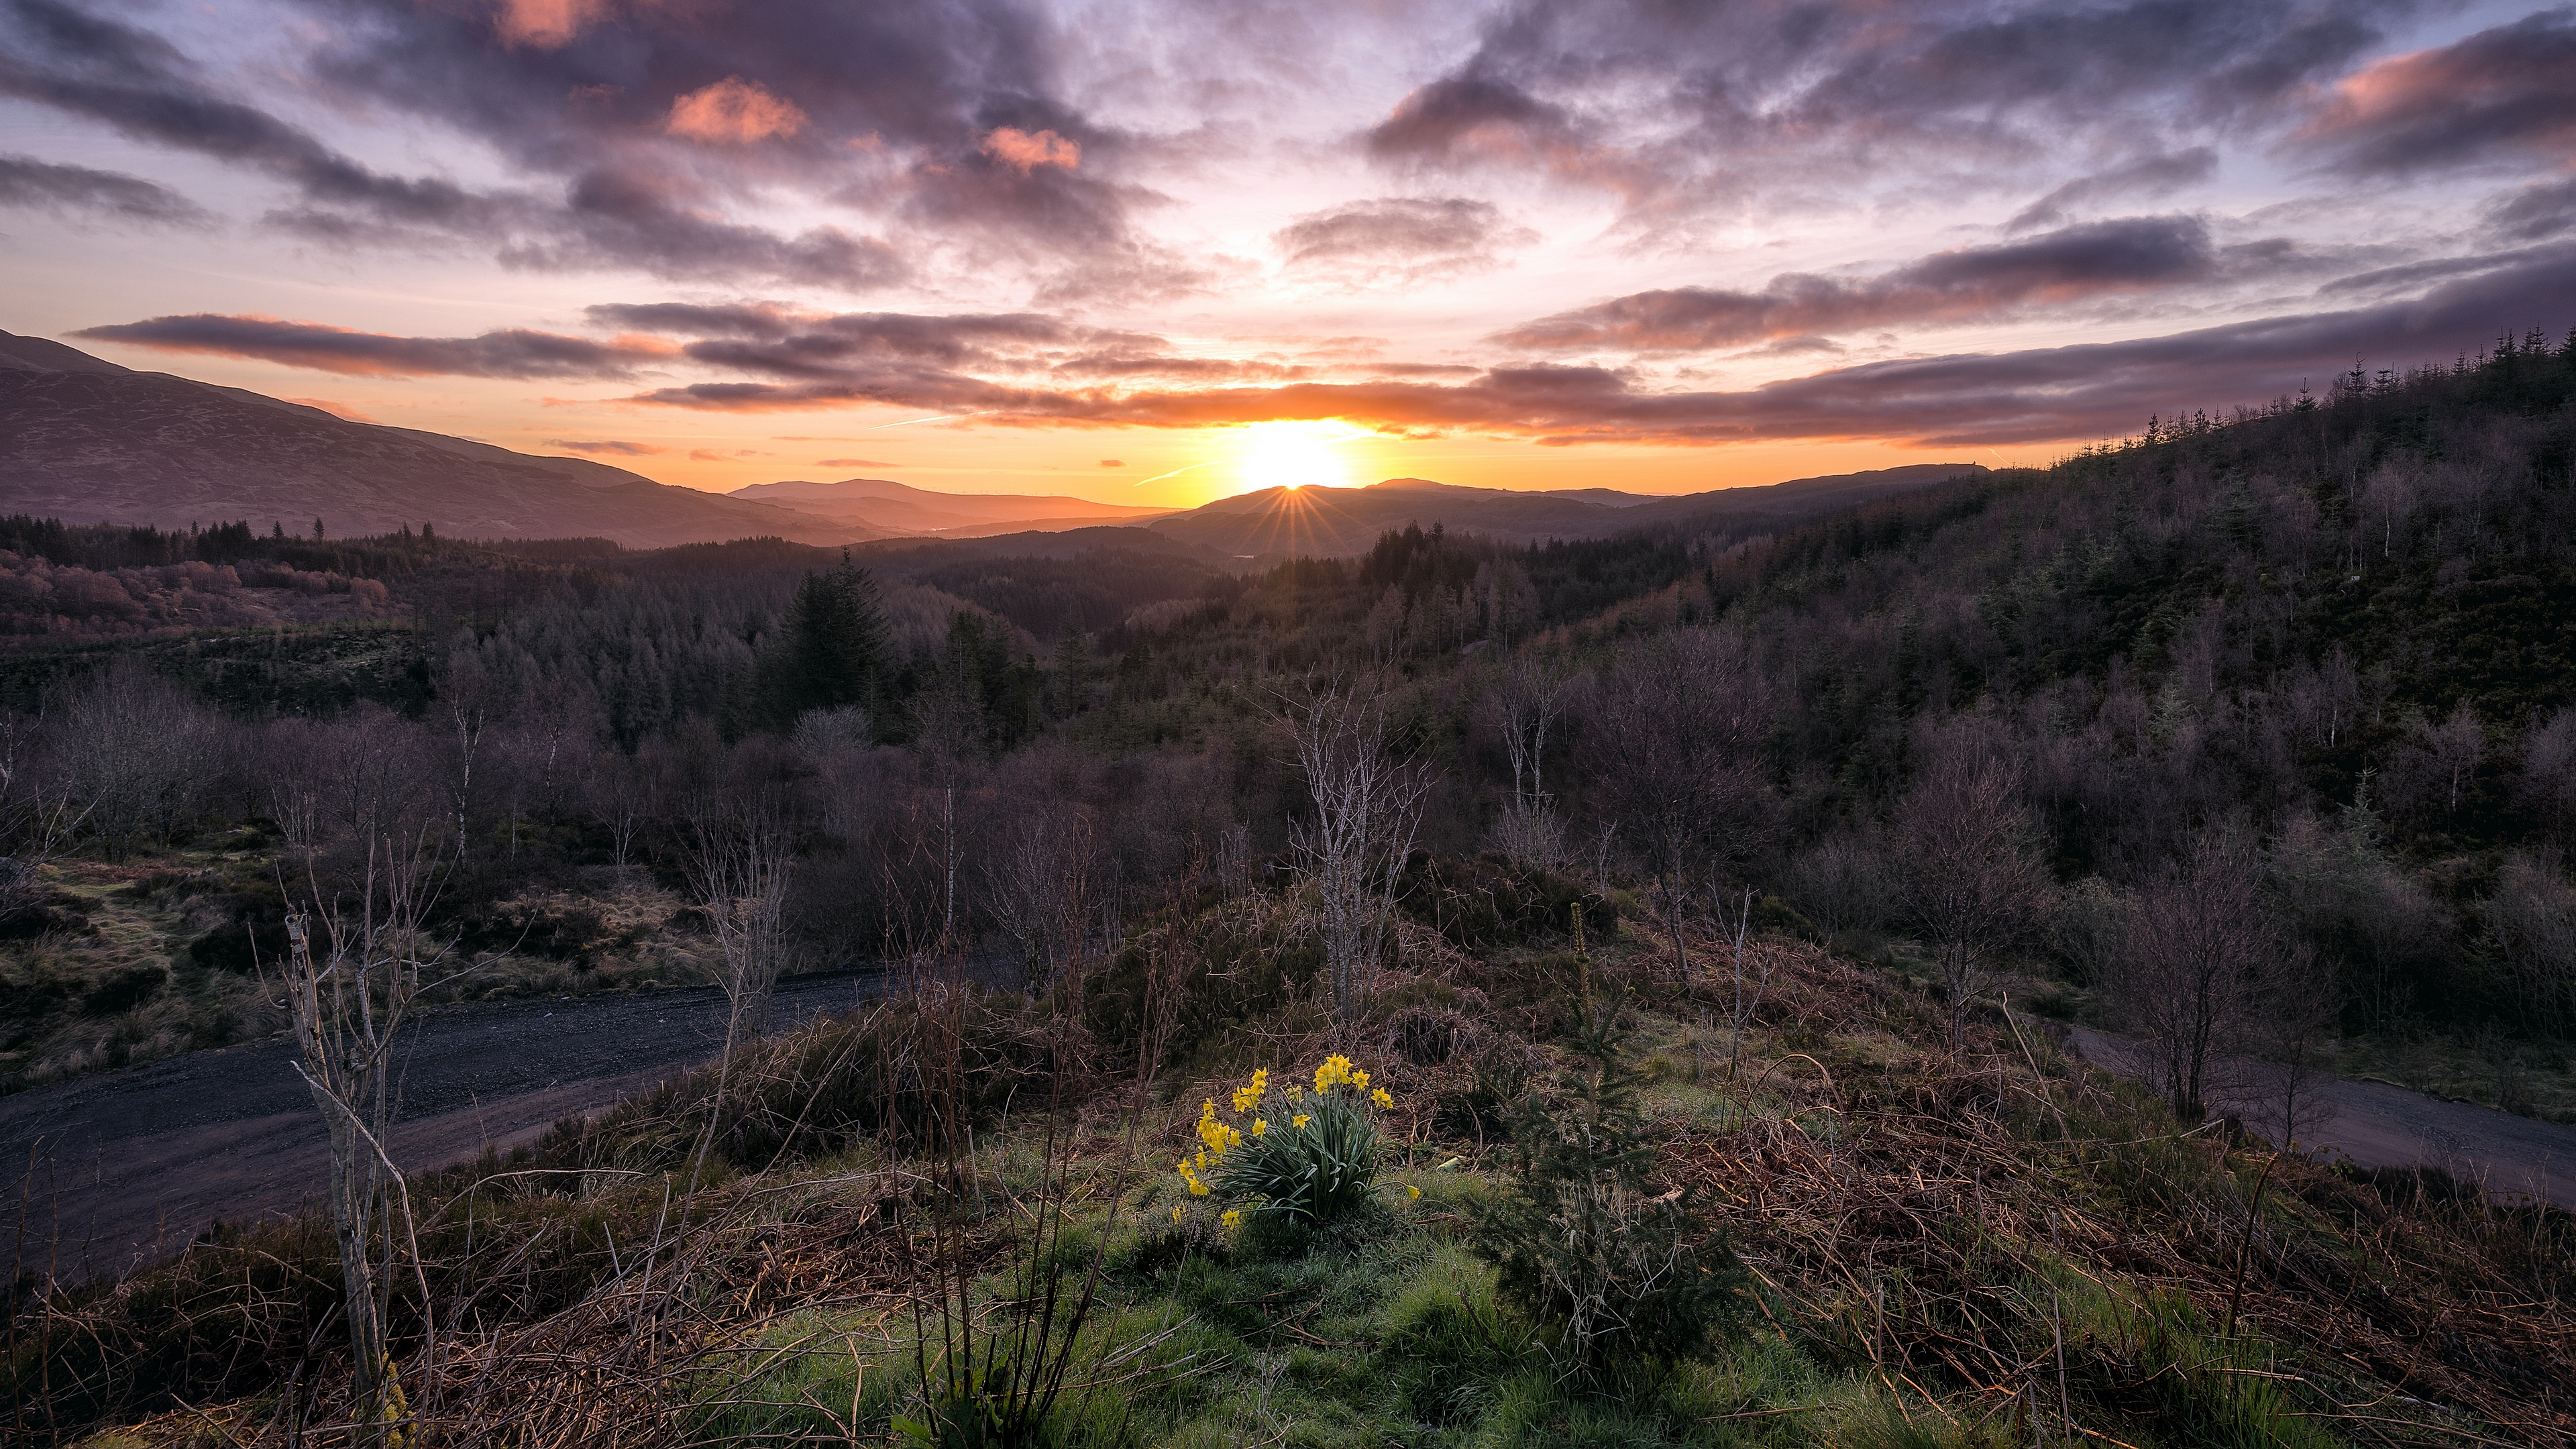 mountains sunrise sky landscape loch lomond trossachs national park scotland 4k 1541116823 - mountains, sunrise, sky, landscape, loch lomond, trossachs national park, scotland 4k - sunrise, Sky, Mountains